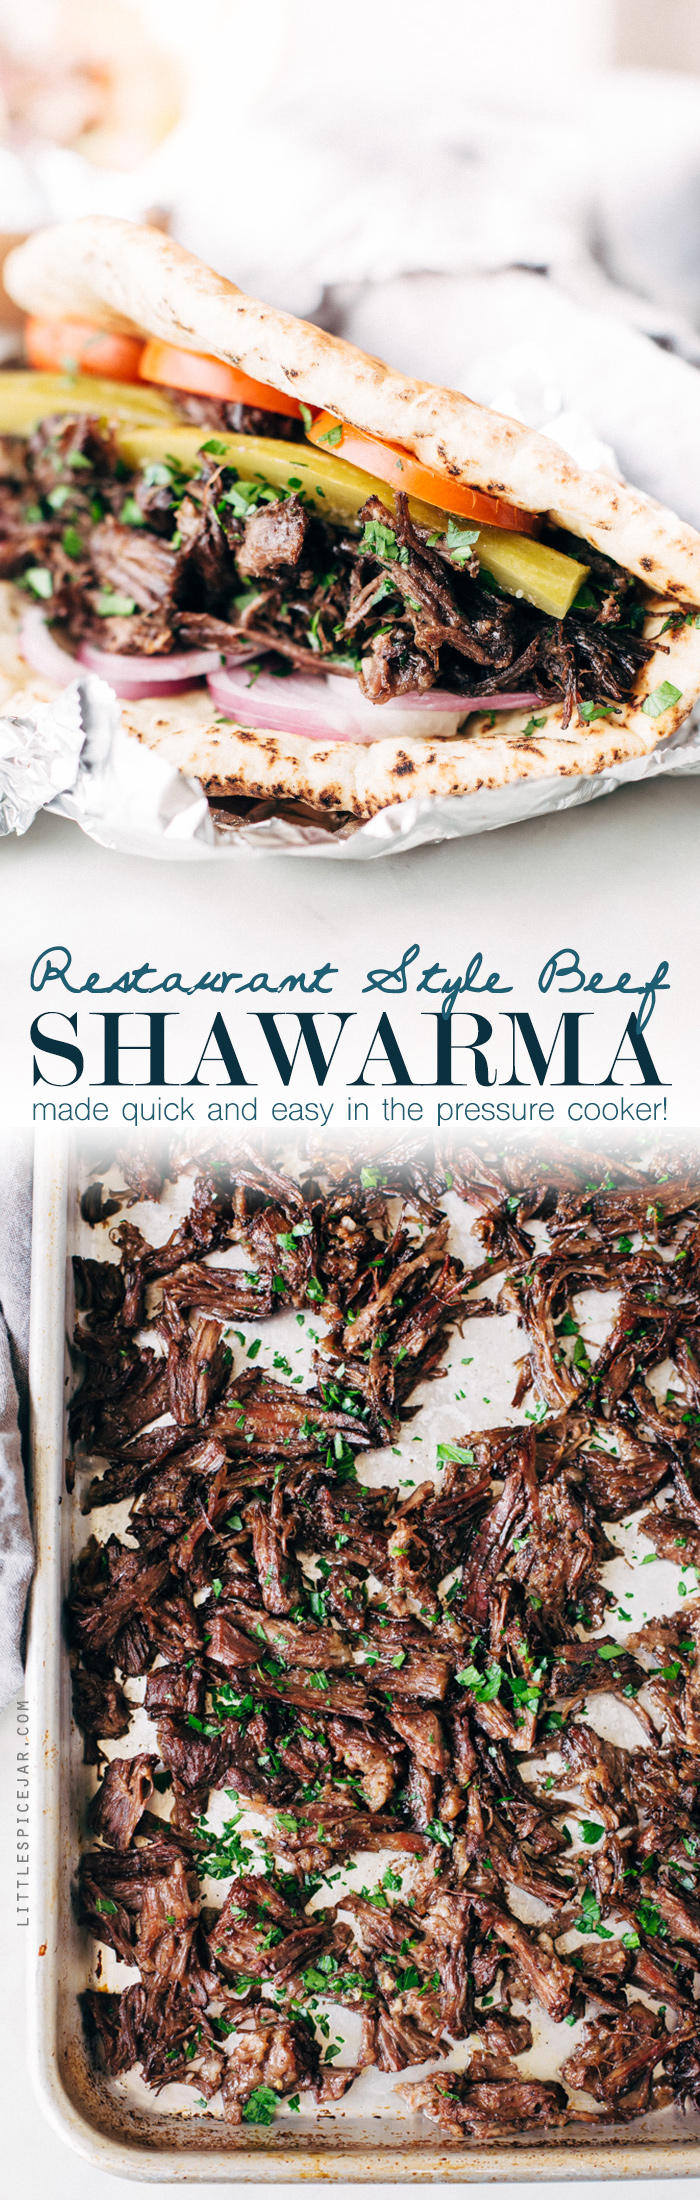 Restaurant Style Beef Shawarma (Pressure Cooker) - an easy recipe for homemade shawarma right in your instant pot! This shredded beef can be used immediately or frozen for later! #instantpot #beefshawarma #shawarma #pressurecooker   Littlespicejar.com